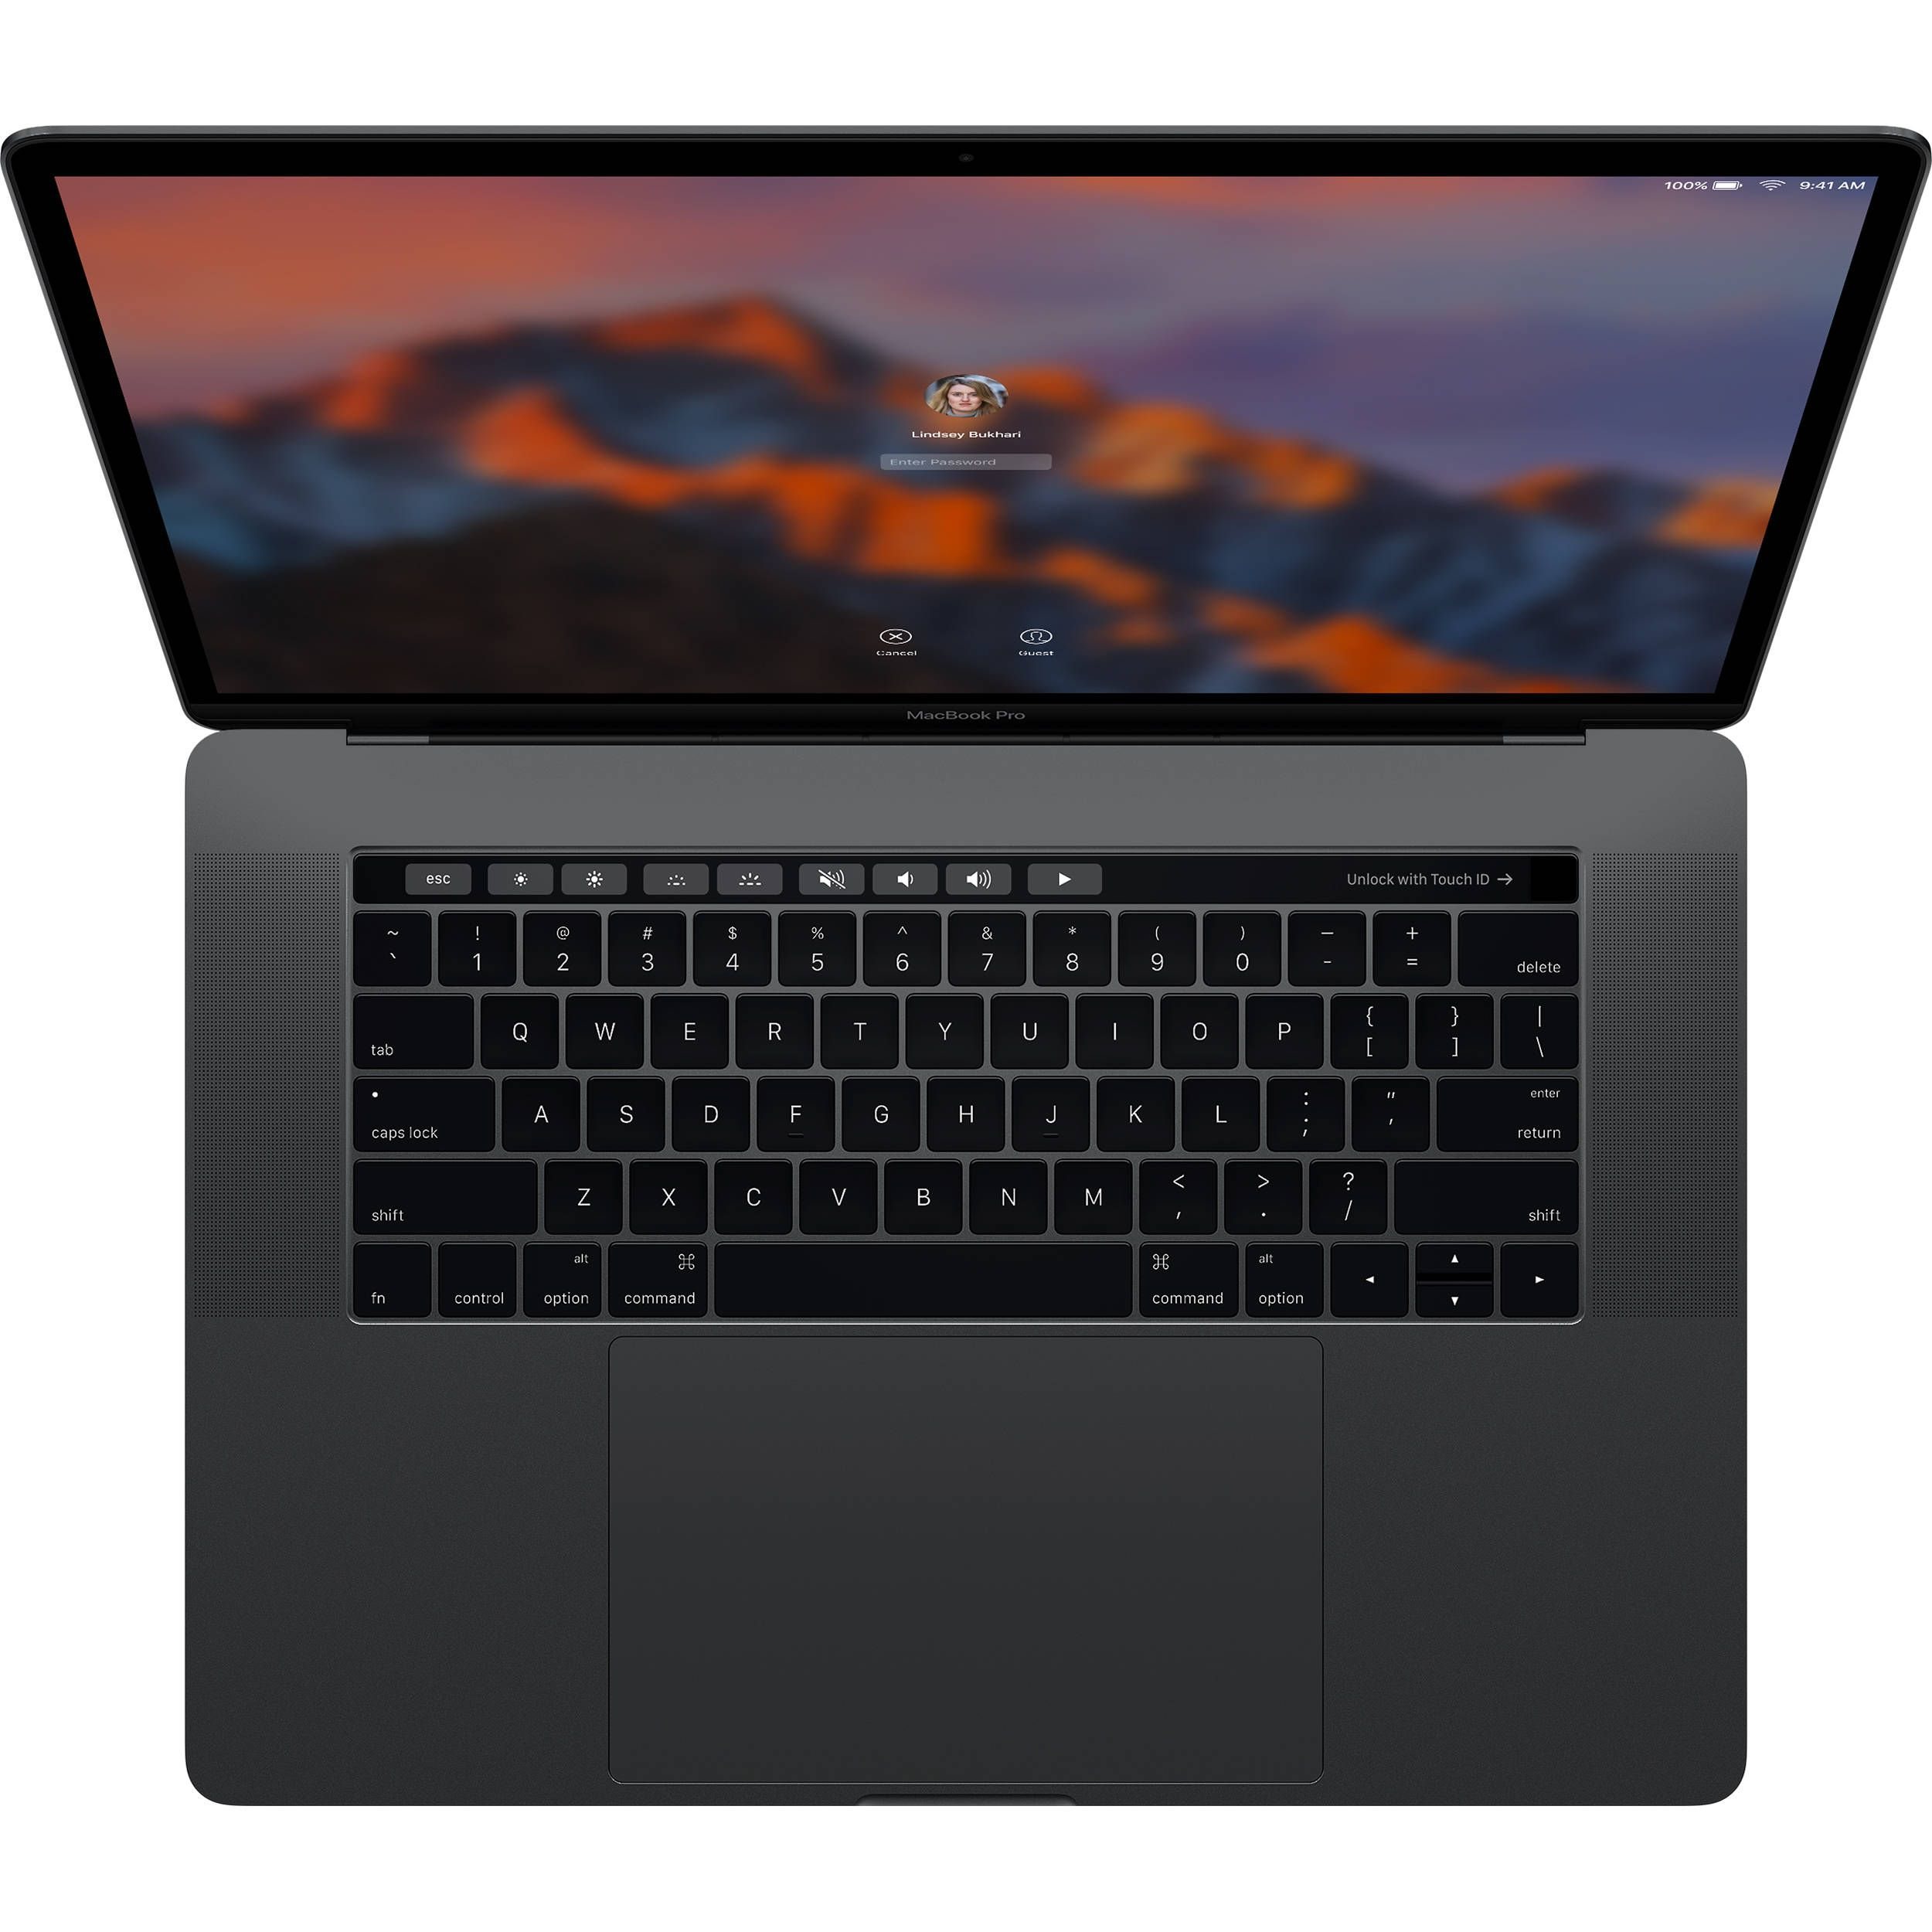 Wallpapers For Macbook Pro 13 Inch Wallpaper Cave Macbook Air Wallpaper Retina Wallpaper Ipad Air Wallpaper